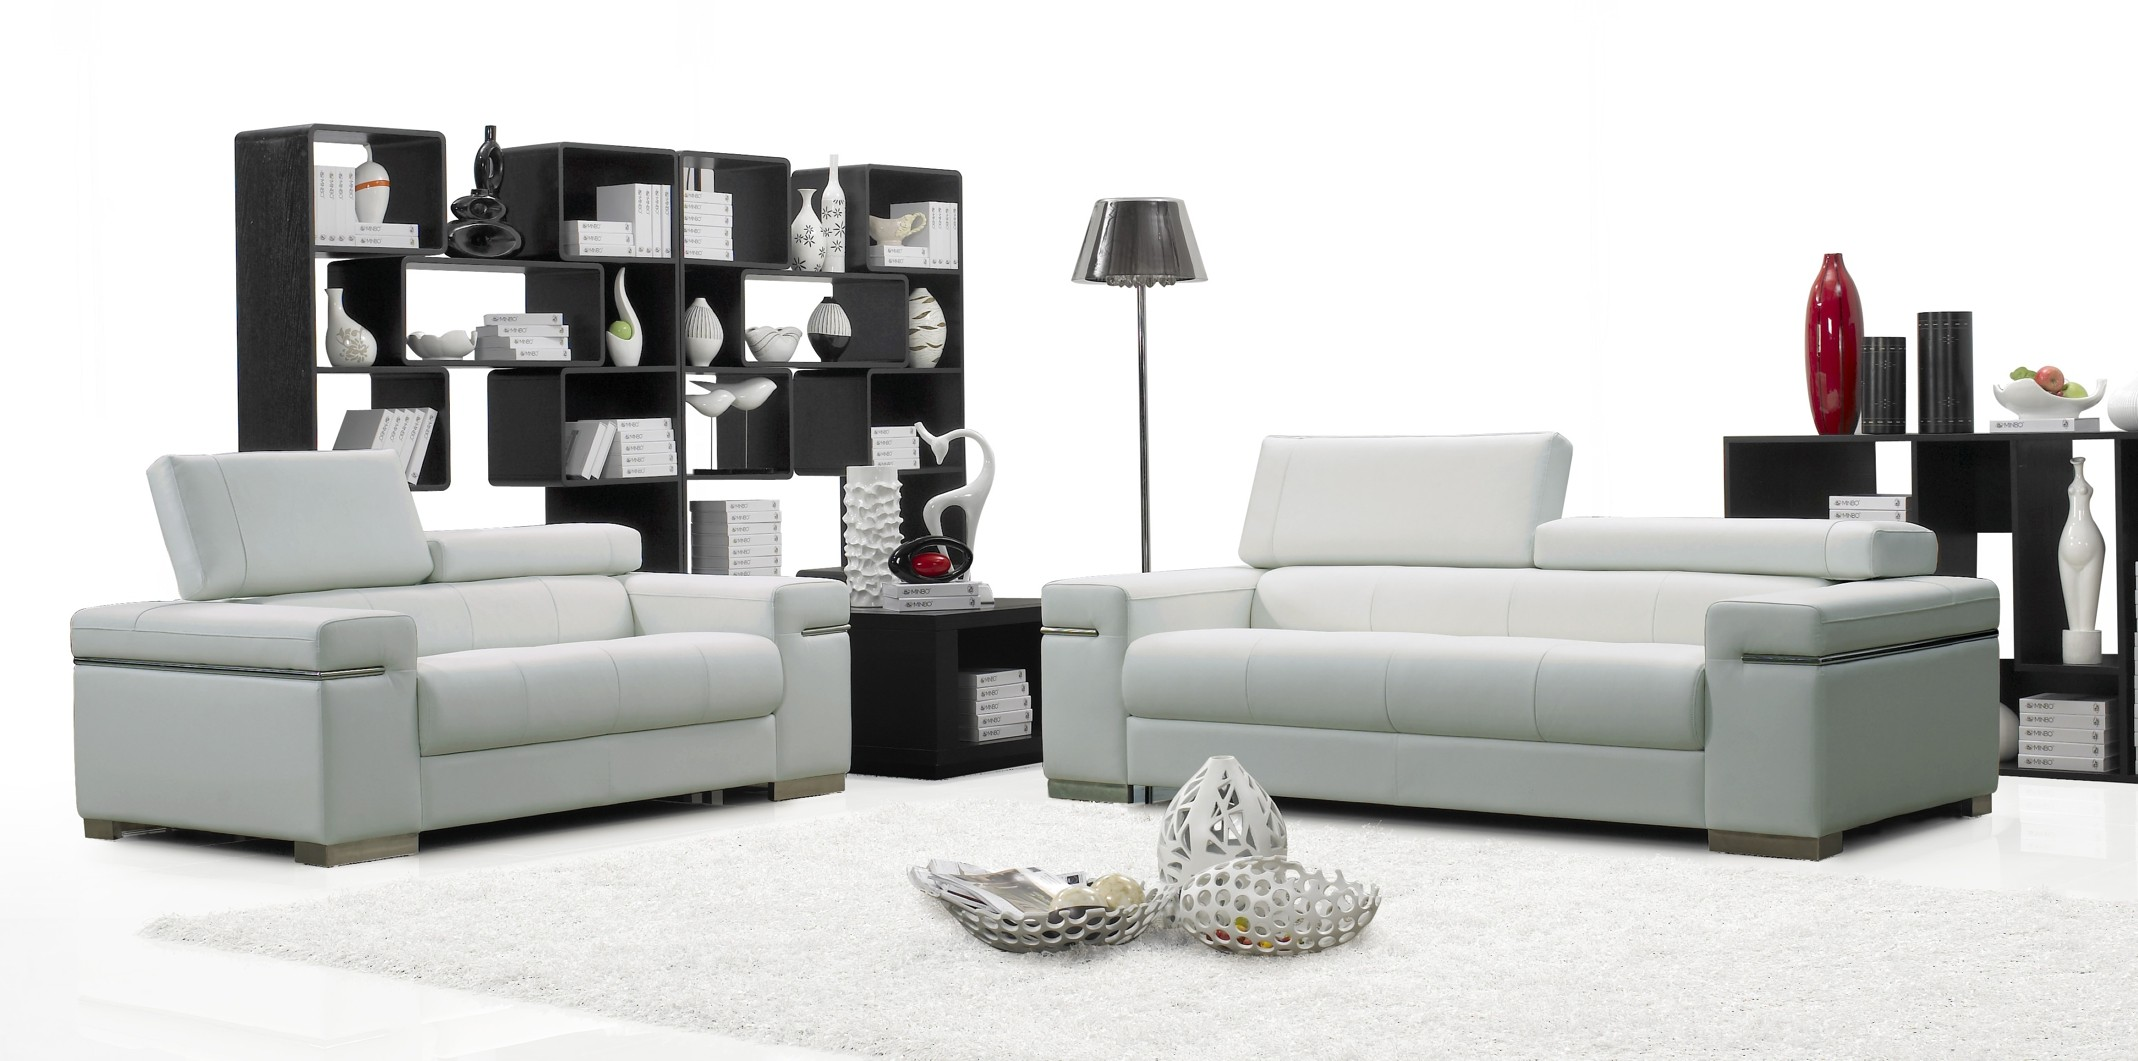 contemporary furniture sofa. VIEW IN GALLERY Superb Design Of The White Rugs And Wall Added With Grey Modern Sofa Sets Ideas Contemporary Furniture I